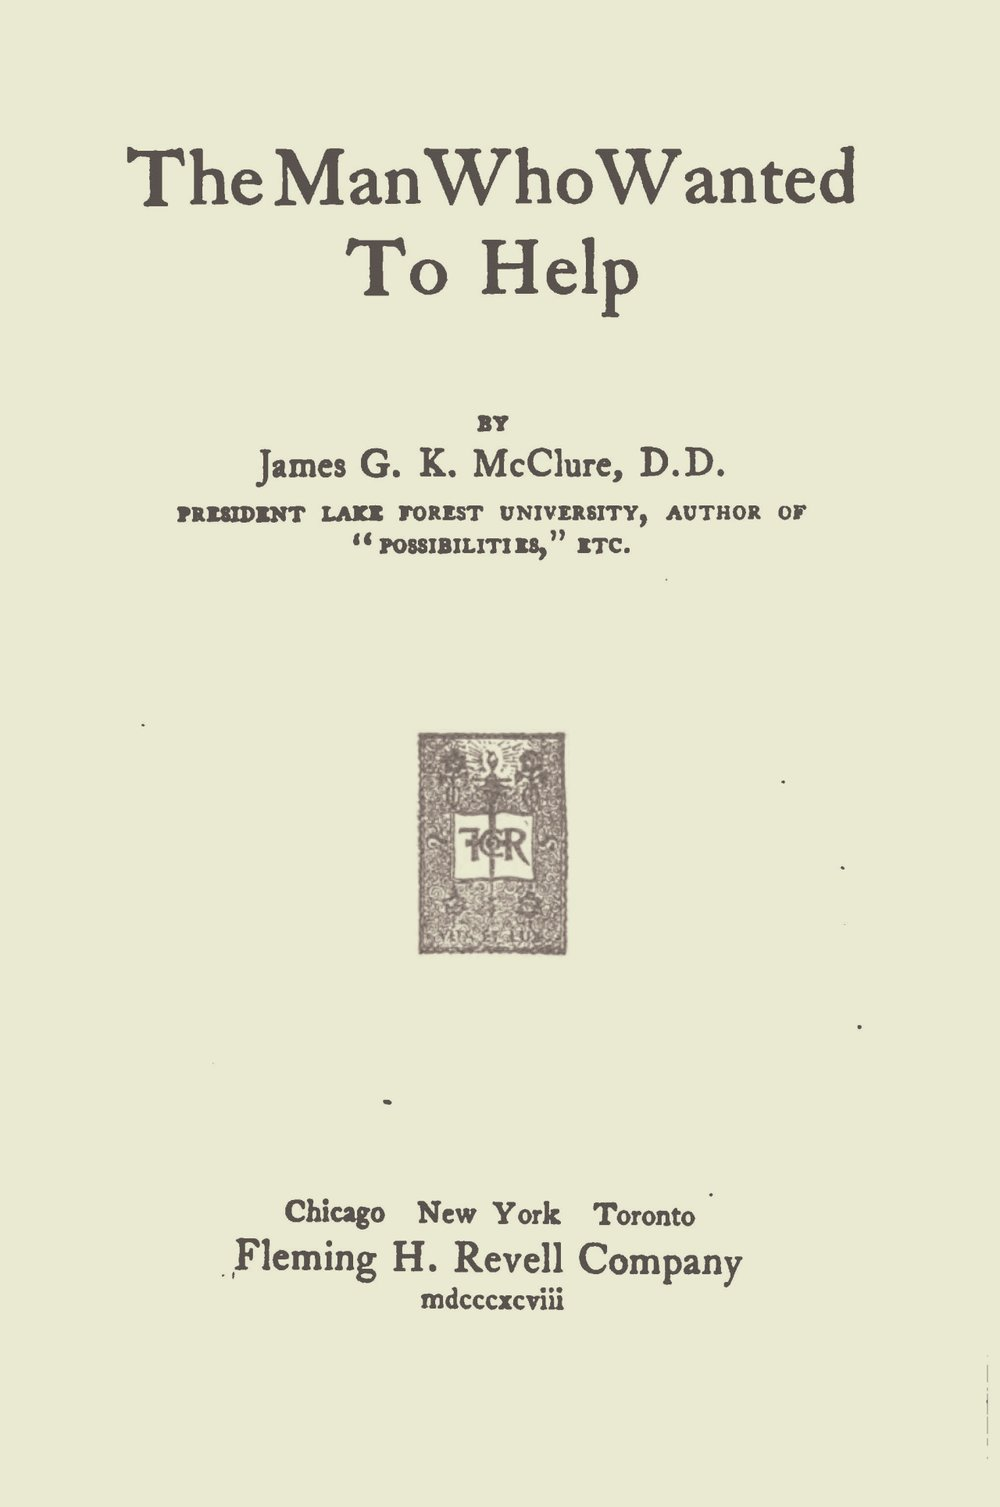 McClure, Sr., James Gore King, The Man Who Wanted to Help Title Page.jpg